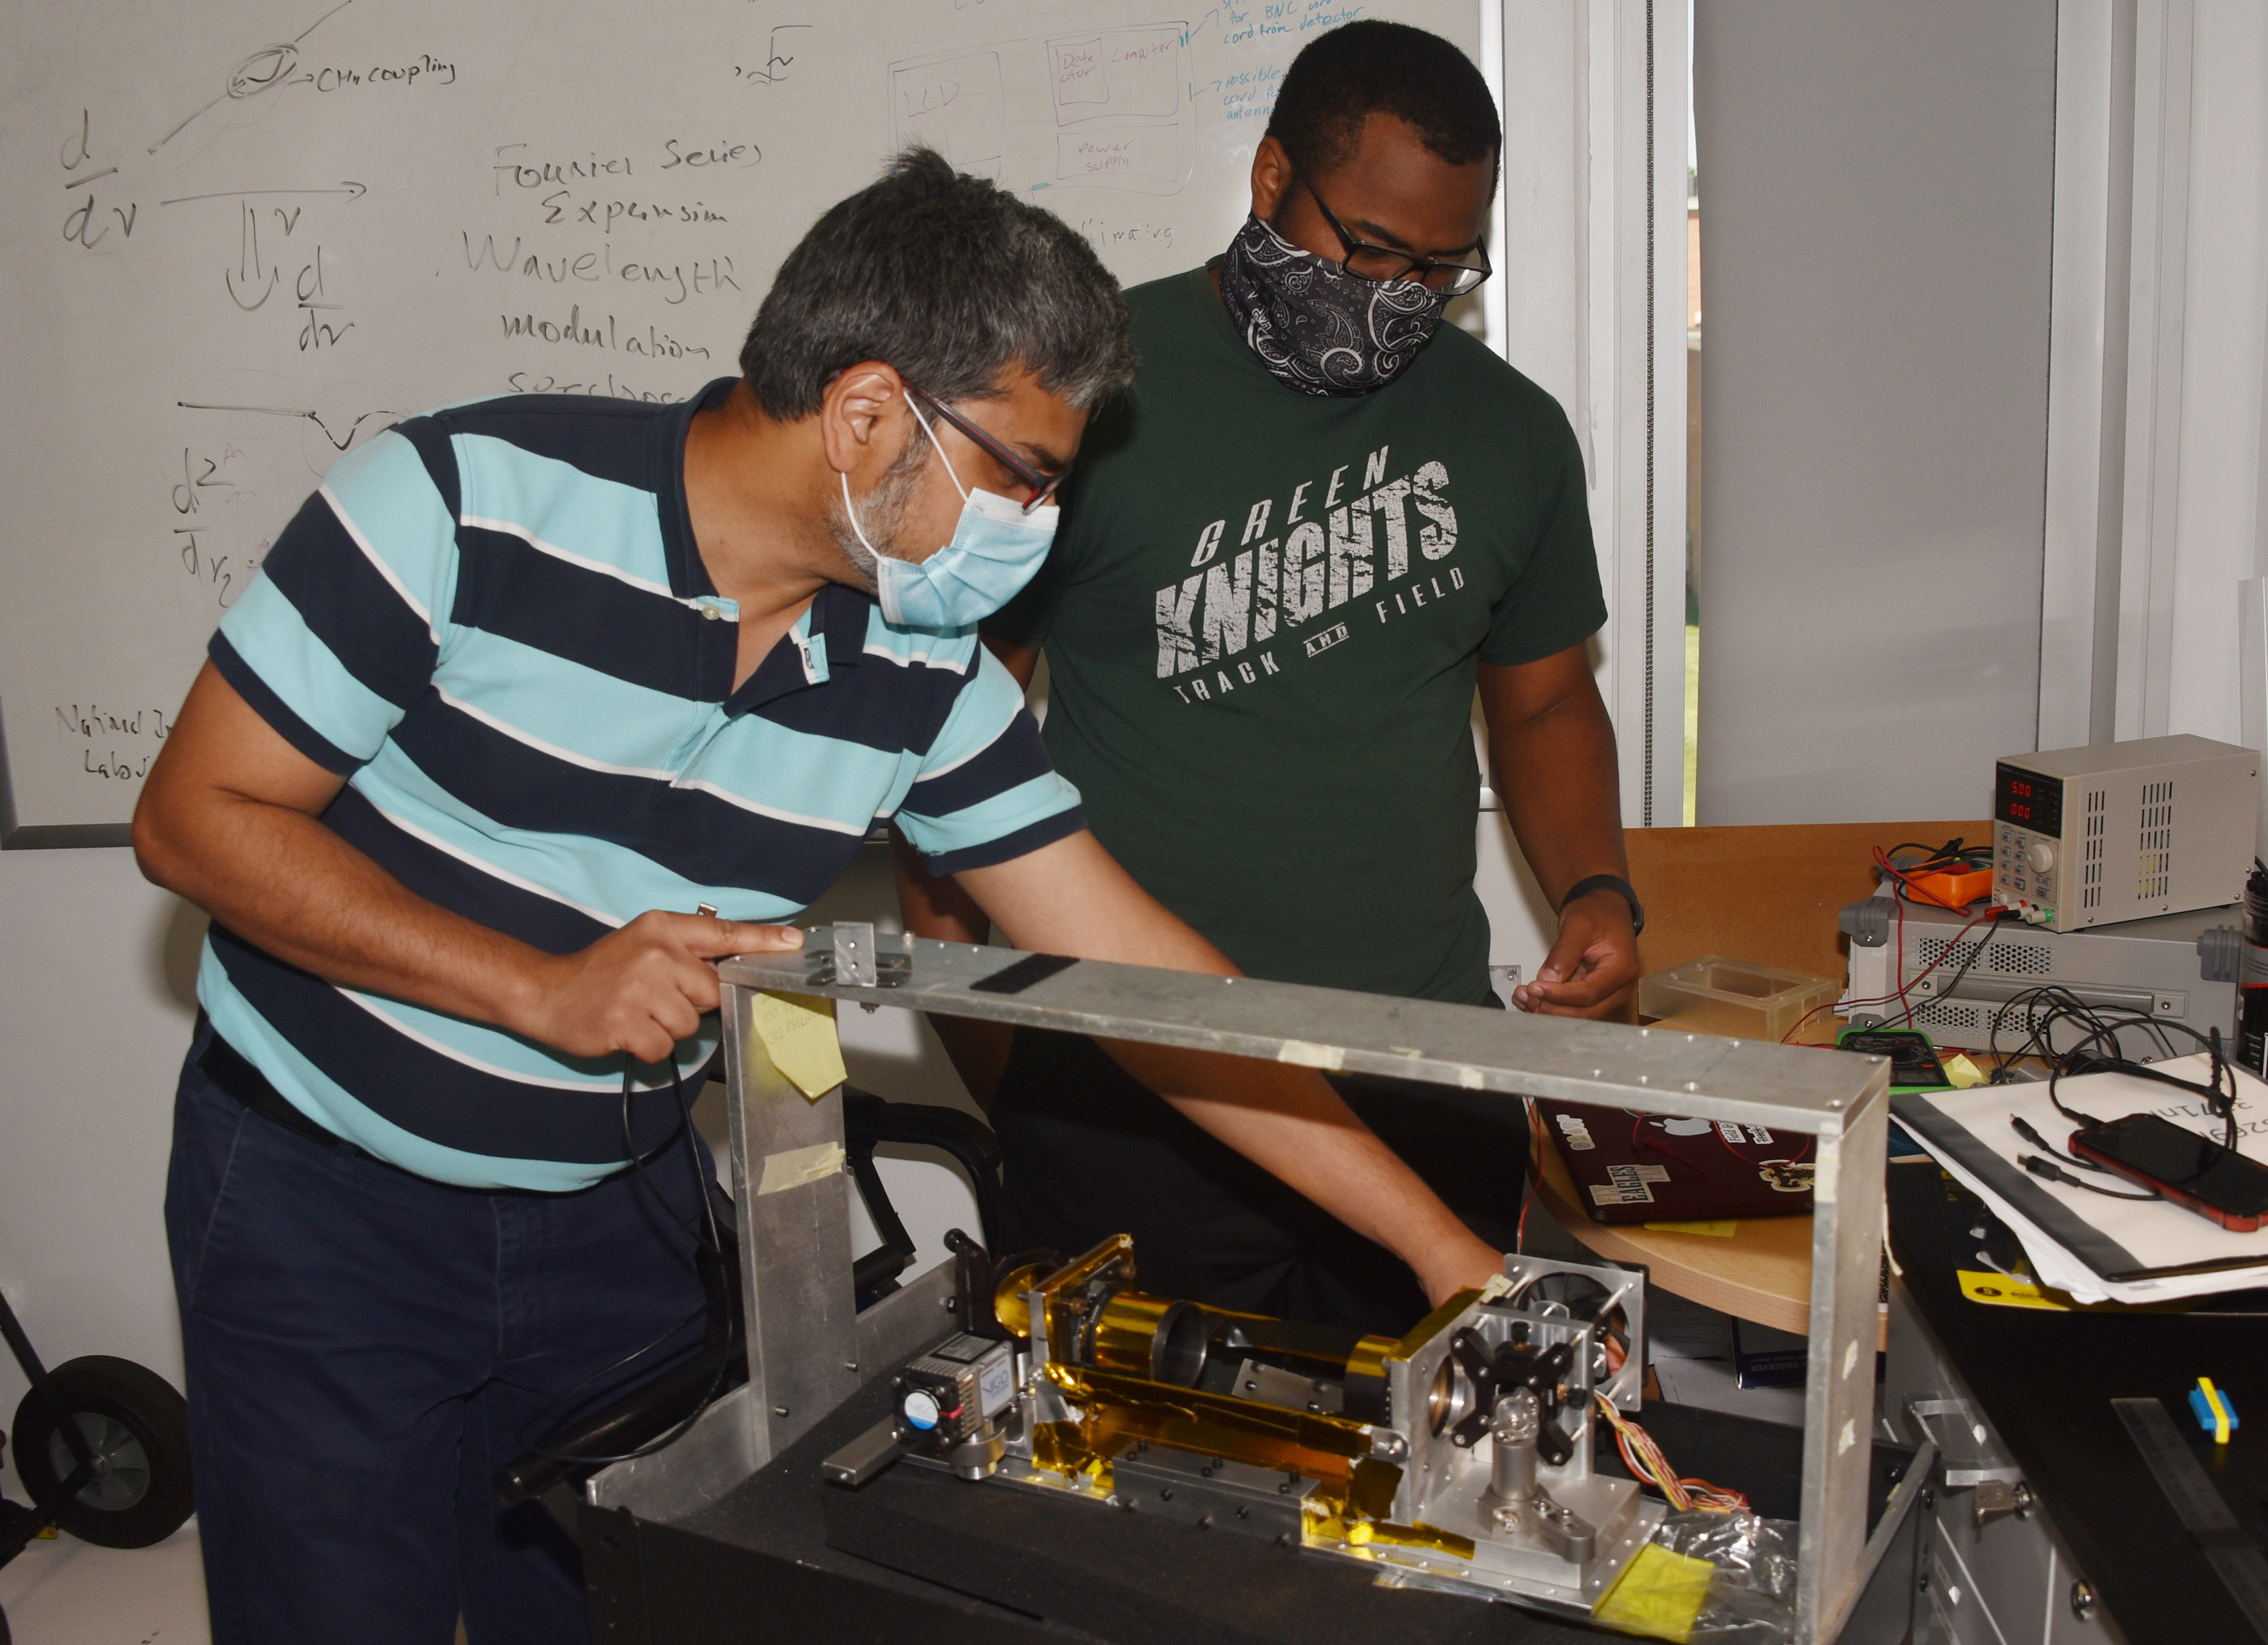 Dr. Amir Khan shares knowledge with Andrew Horne, a engineering undergraduate.